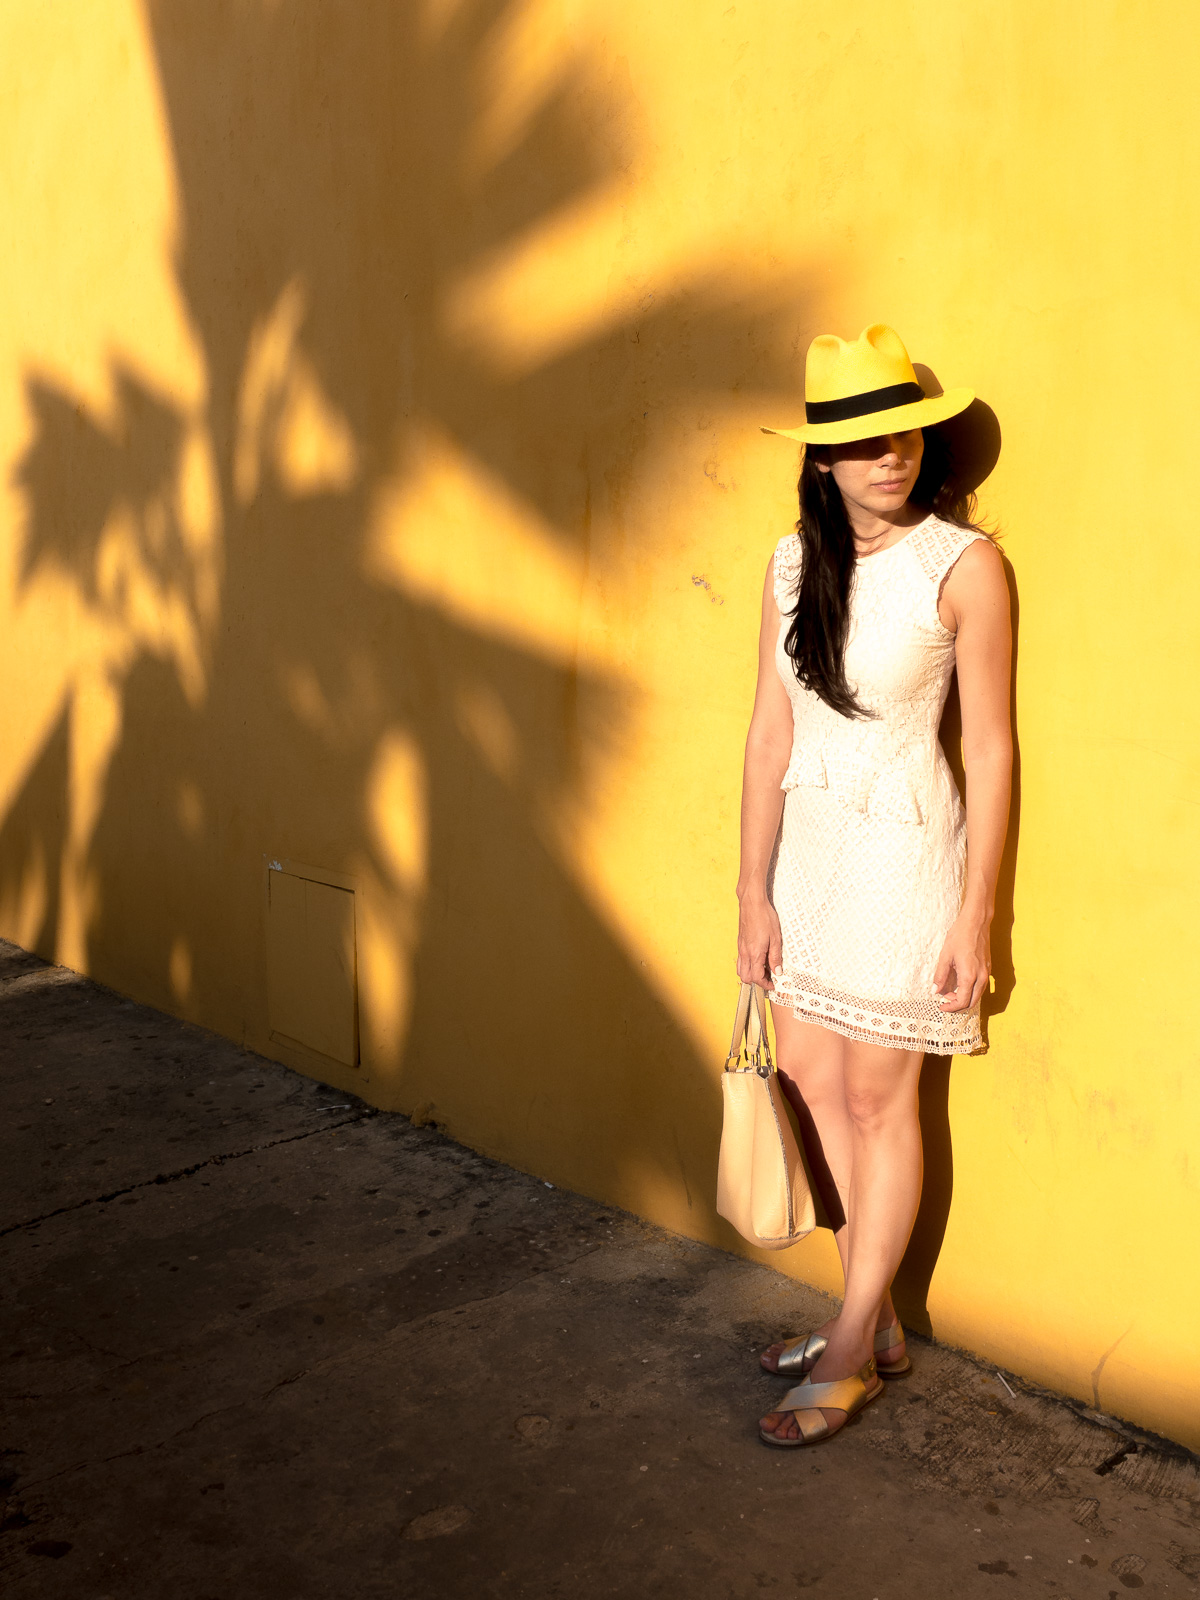 potrait of young woman with hat photographer medellin deutscher fotograf medellin